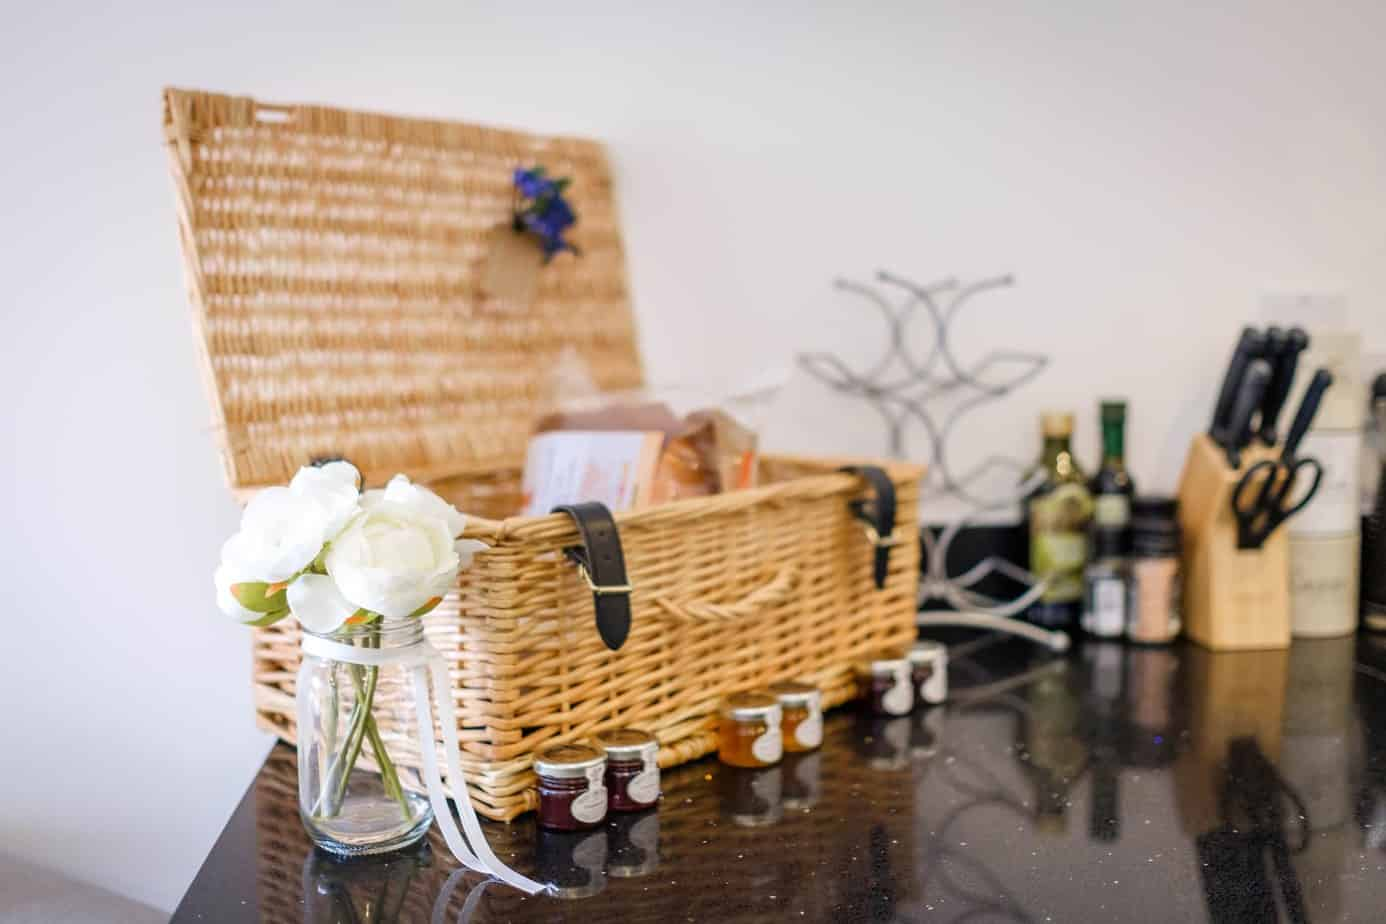 Tailored Stays Flamsteed Duplex Apartment cambridge comes with a complimentary welcome hamper